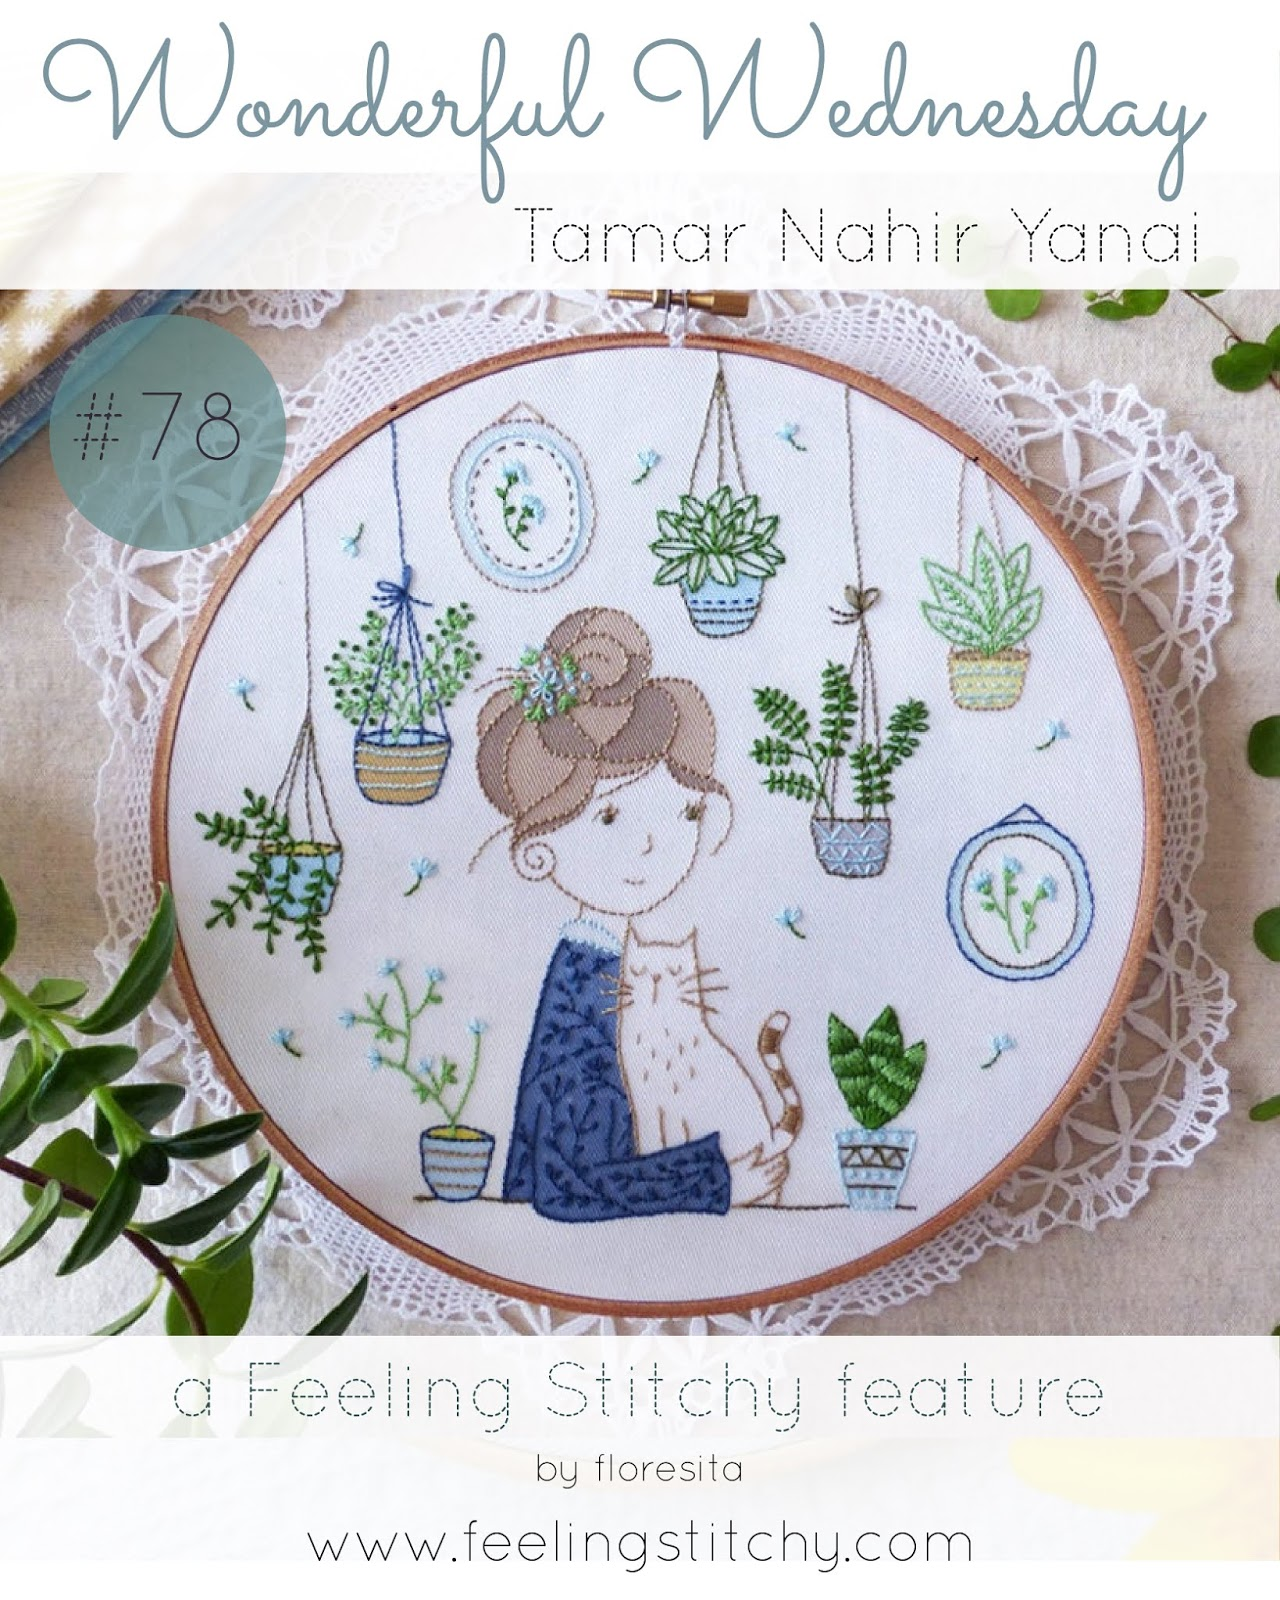 Wonderful Wednesday 78 - Tamar Nahir Yanai Cats and Houseplants embroidery kit as featured by floresita on Feeling Stitchy